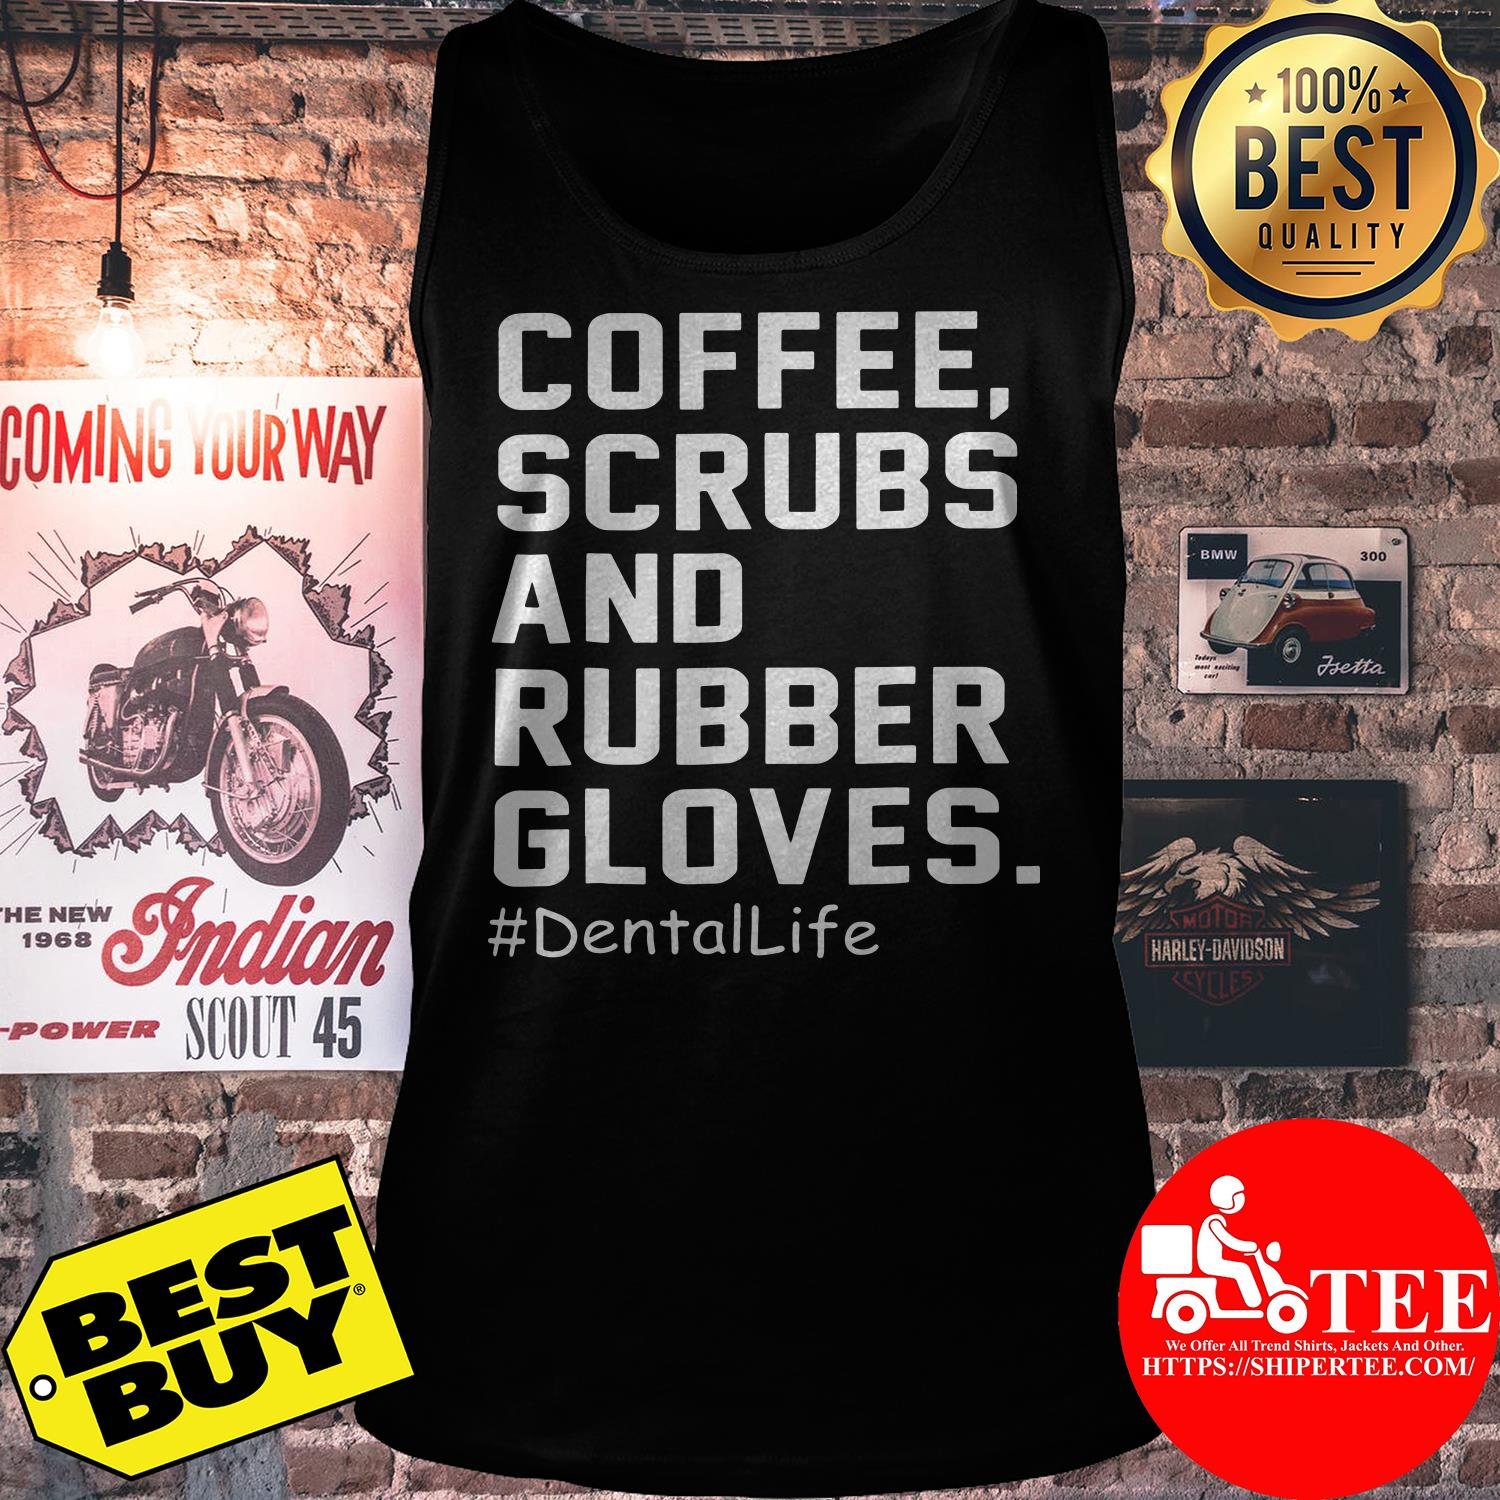 Coffee, Scrubs And Rubber Gloves. #DentalLife tank top